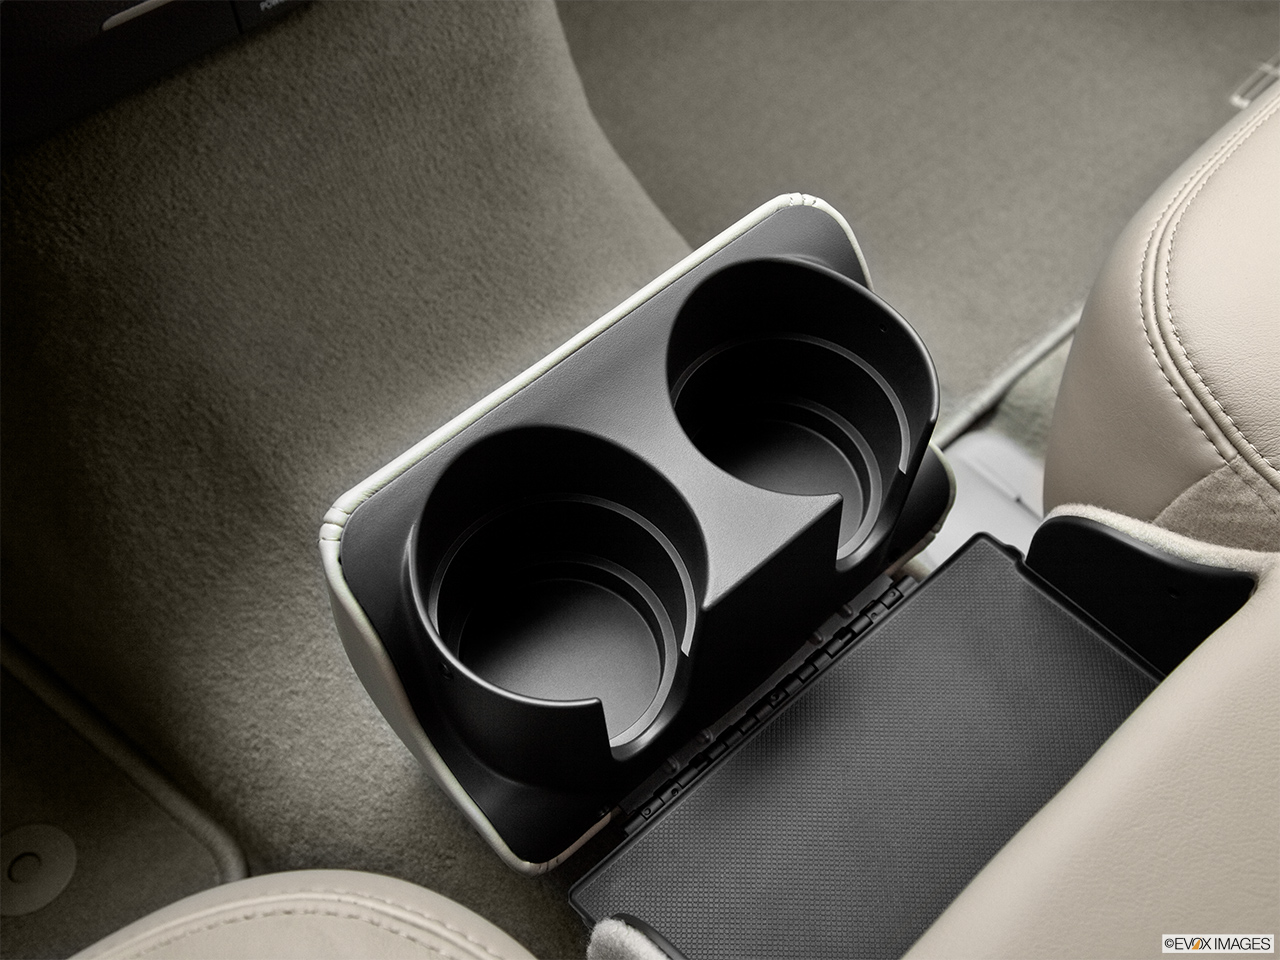 2011 Lincoln Town Car Signature Limited Cup holders.